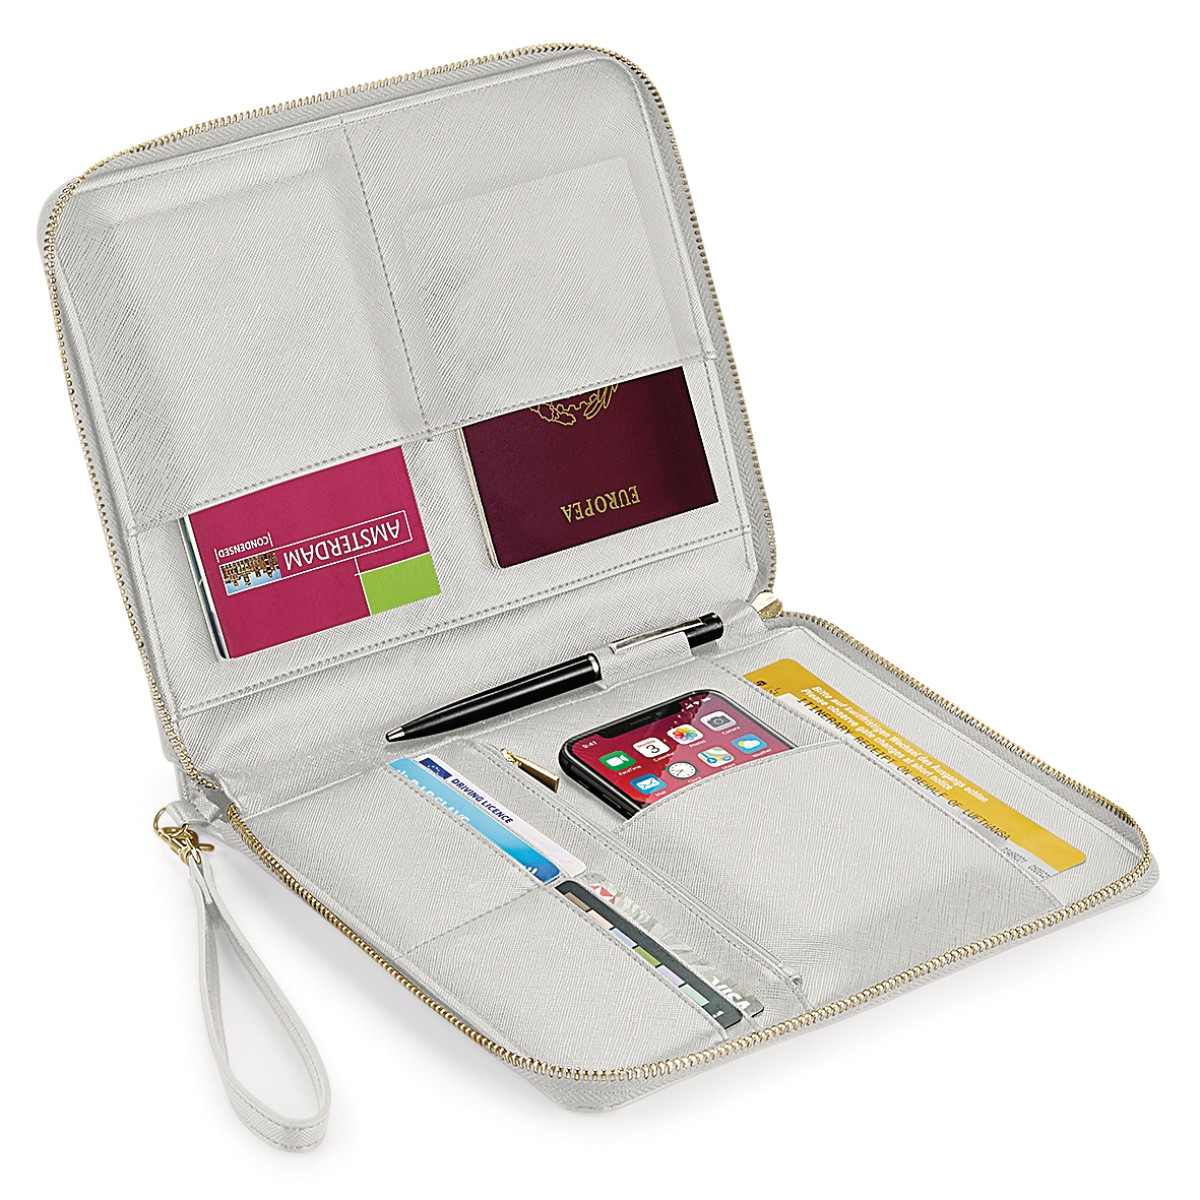 Bagbase Boutique Travel Tech Organiser